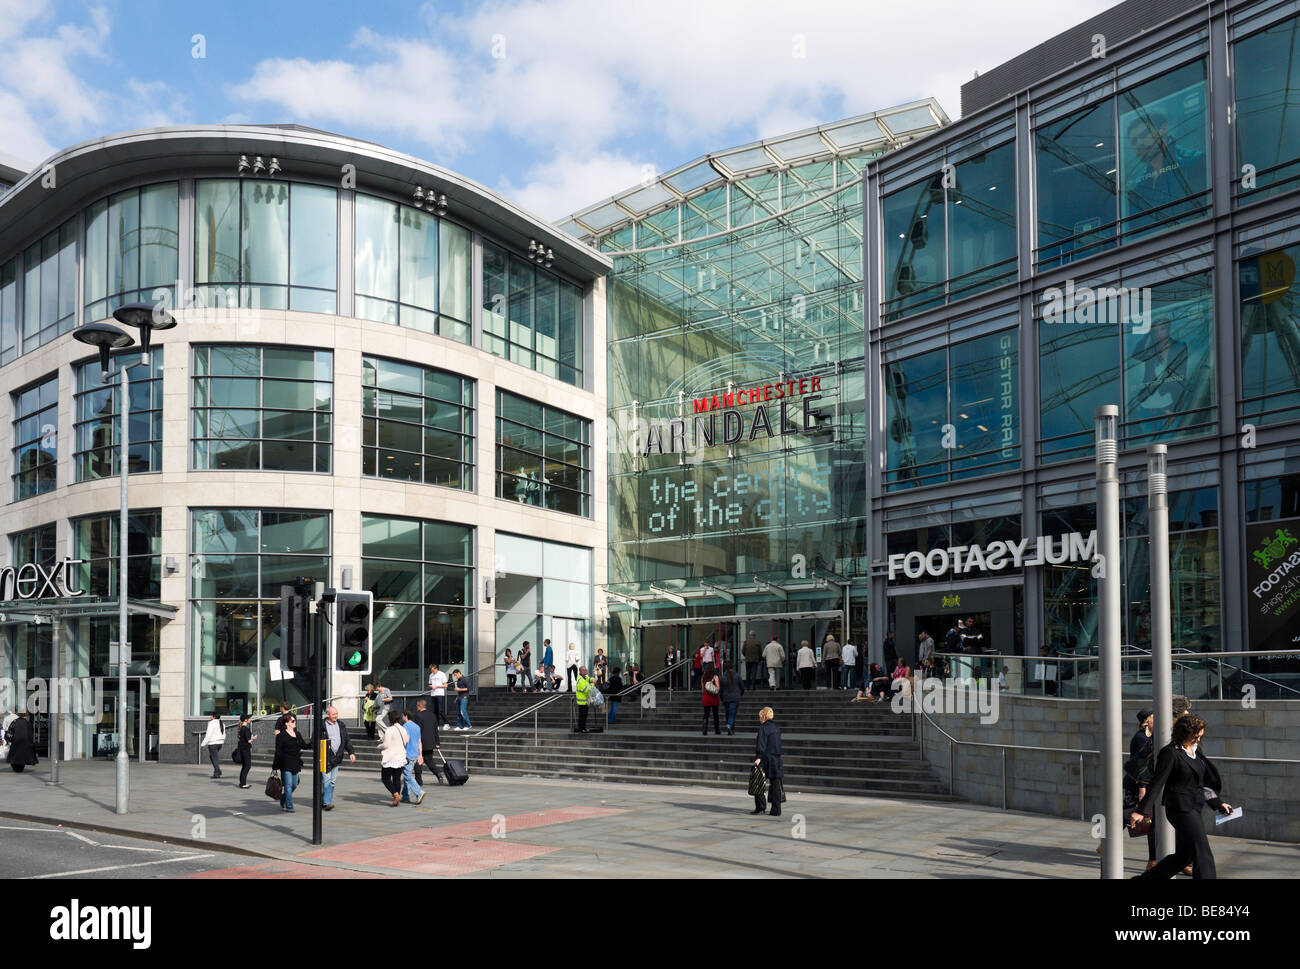 Entrance to the Arndale Centre in Exchange Square, Manchester, England - Stock Image